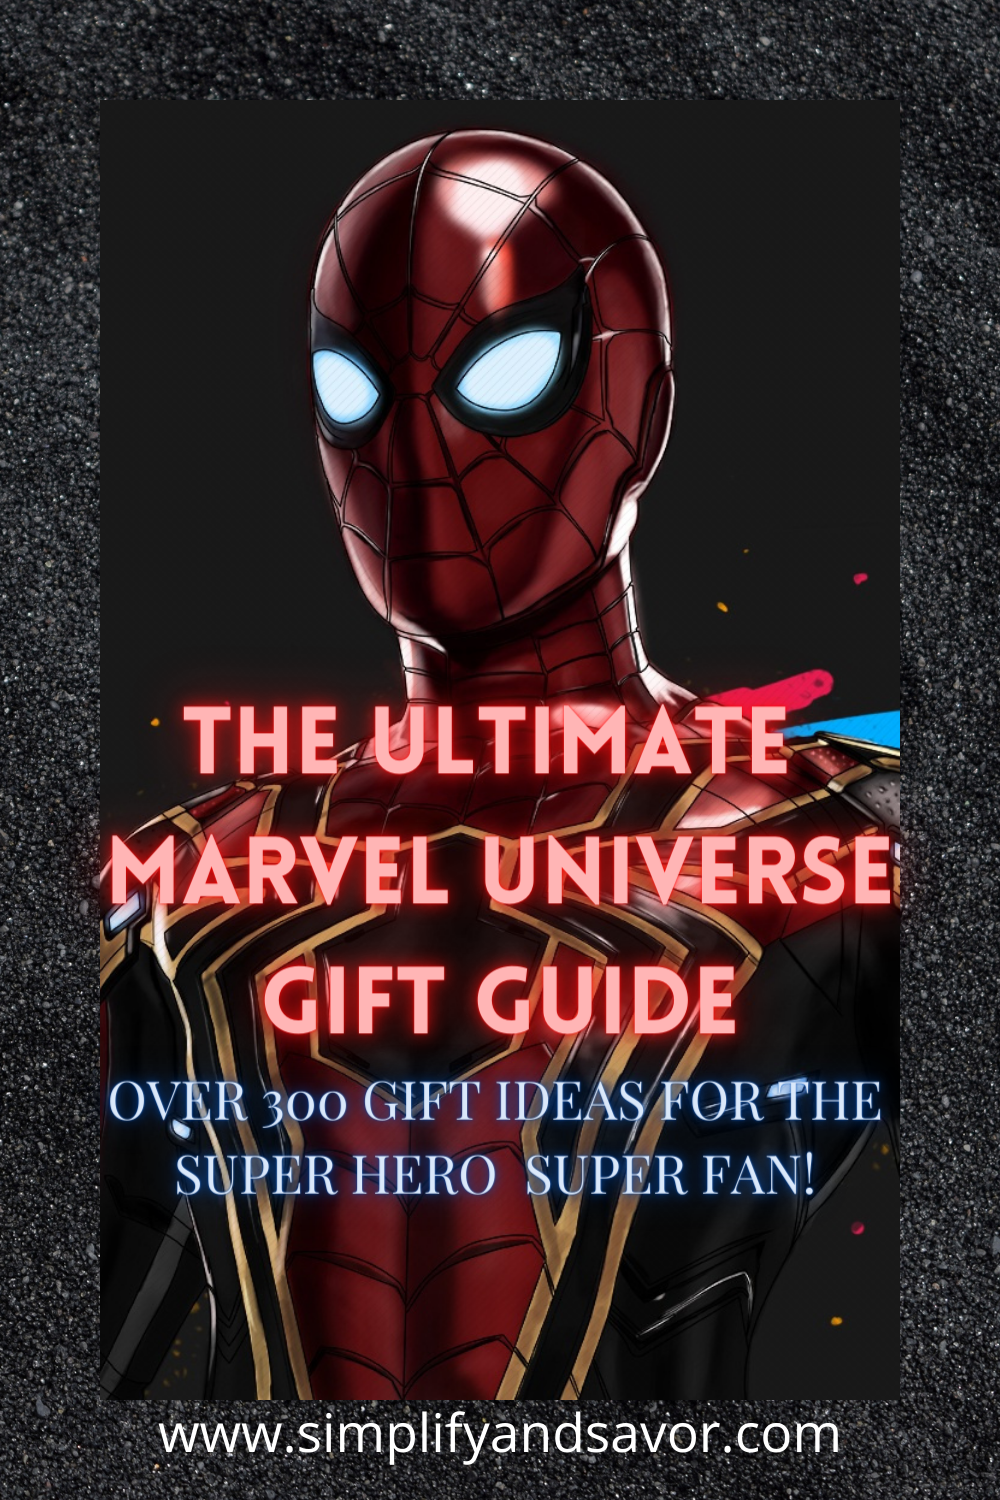 Cover photo for The Ultimate Marvel Universe Gift Guide with over 300 gift ideas for your Super Hero Super Fan.